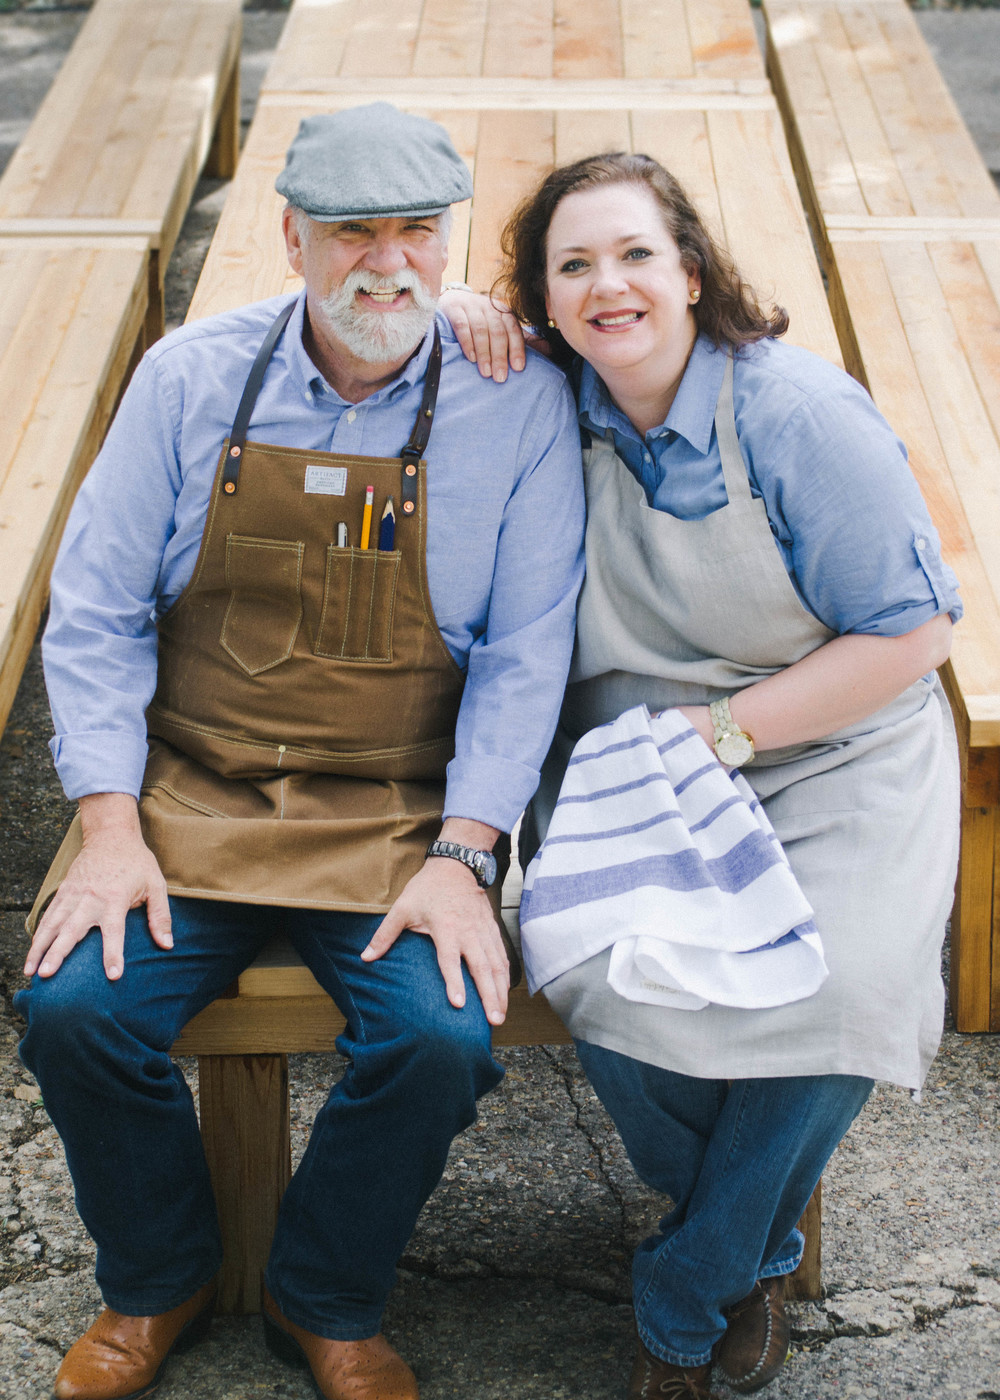 Sarah (right) pictured with her father, Lee (left), who is in charge of building the tables. He collects real cedar from a local lumbar yard and starts shaping tables that are customized by size and stain.